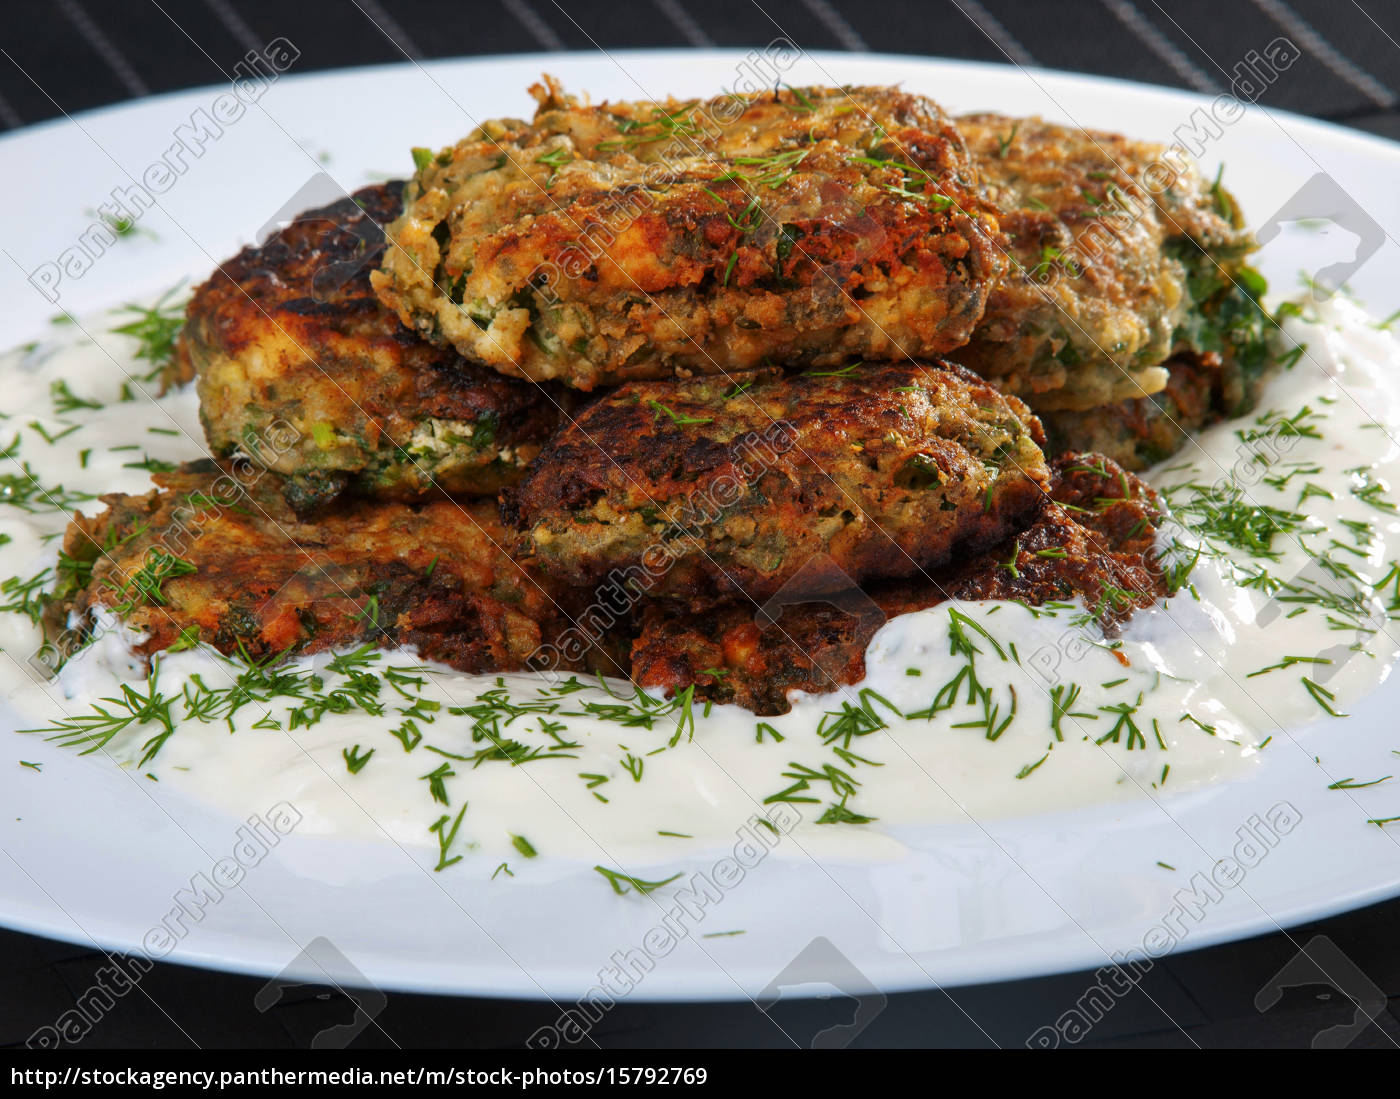 fried, meatballs, with, herbs, fried, meatballs, with - 15792769